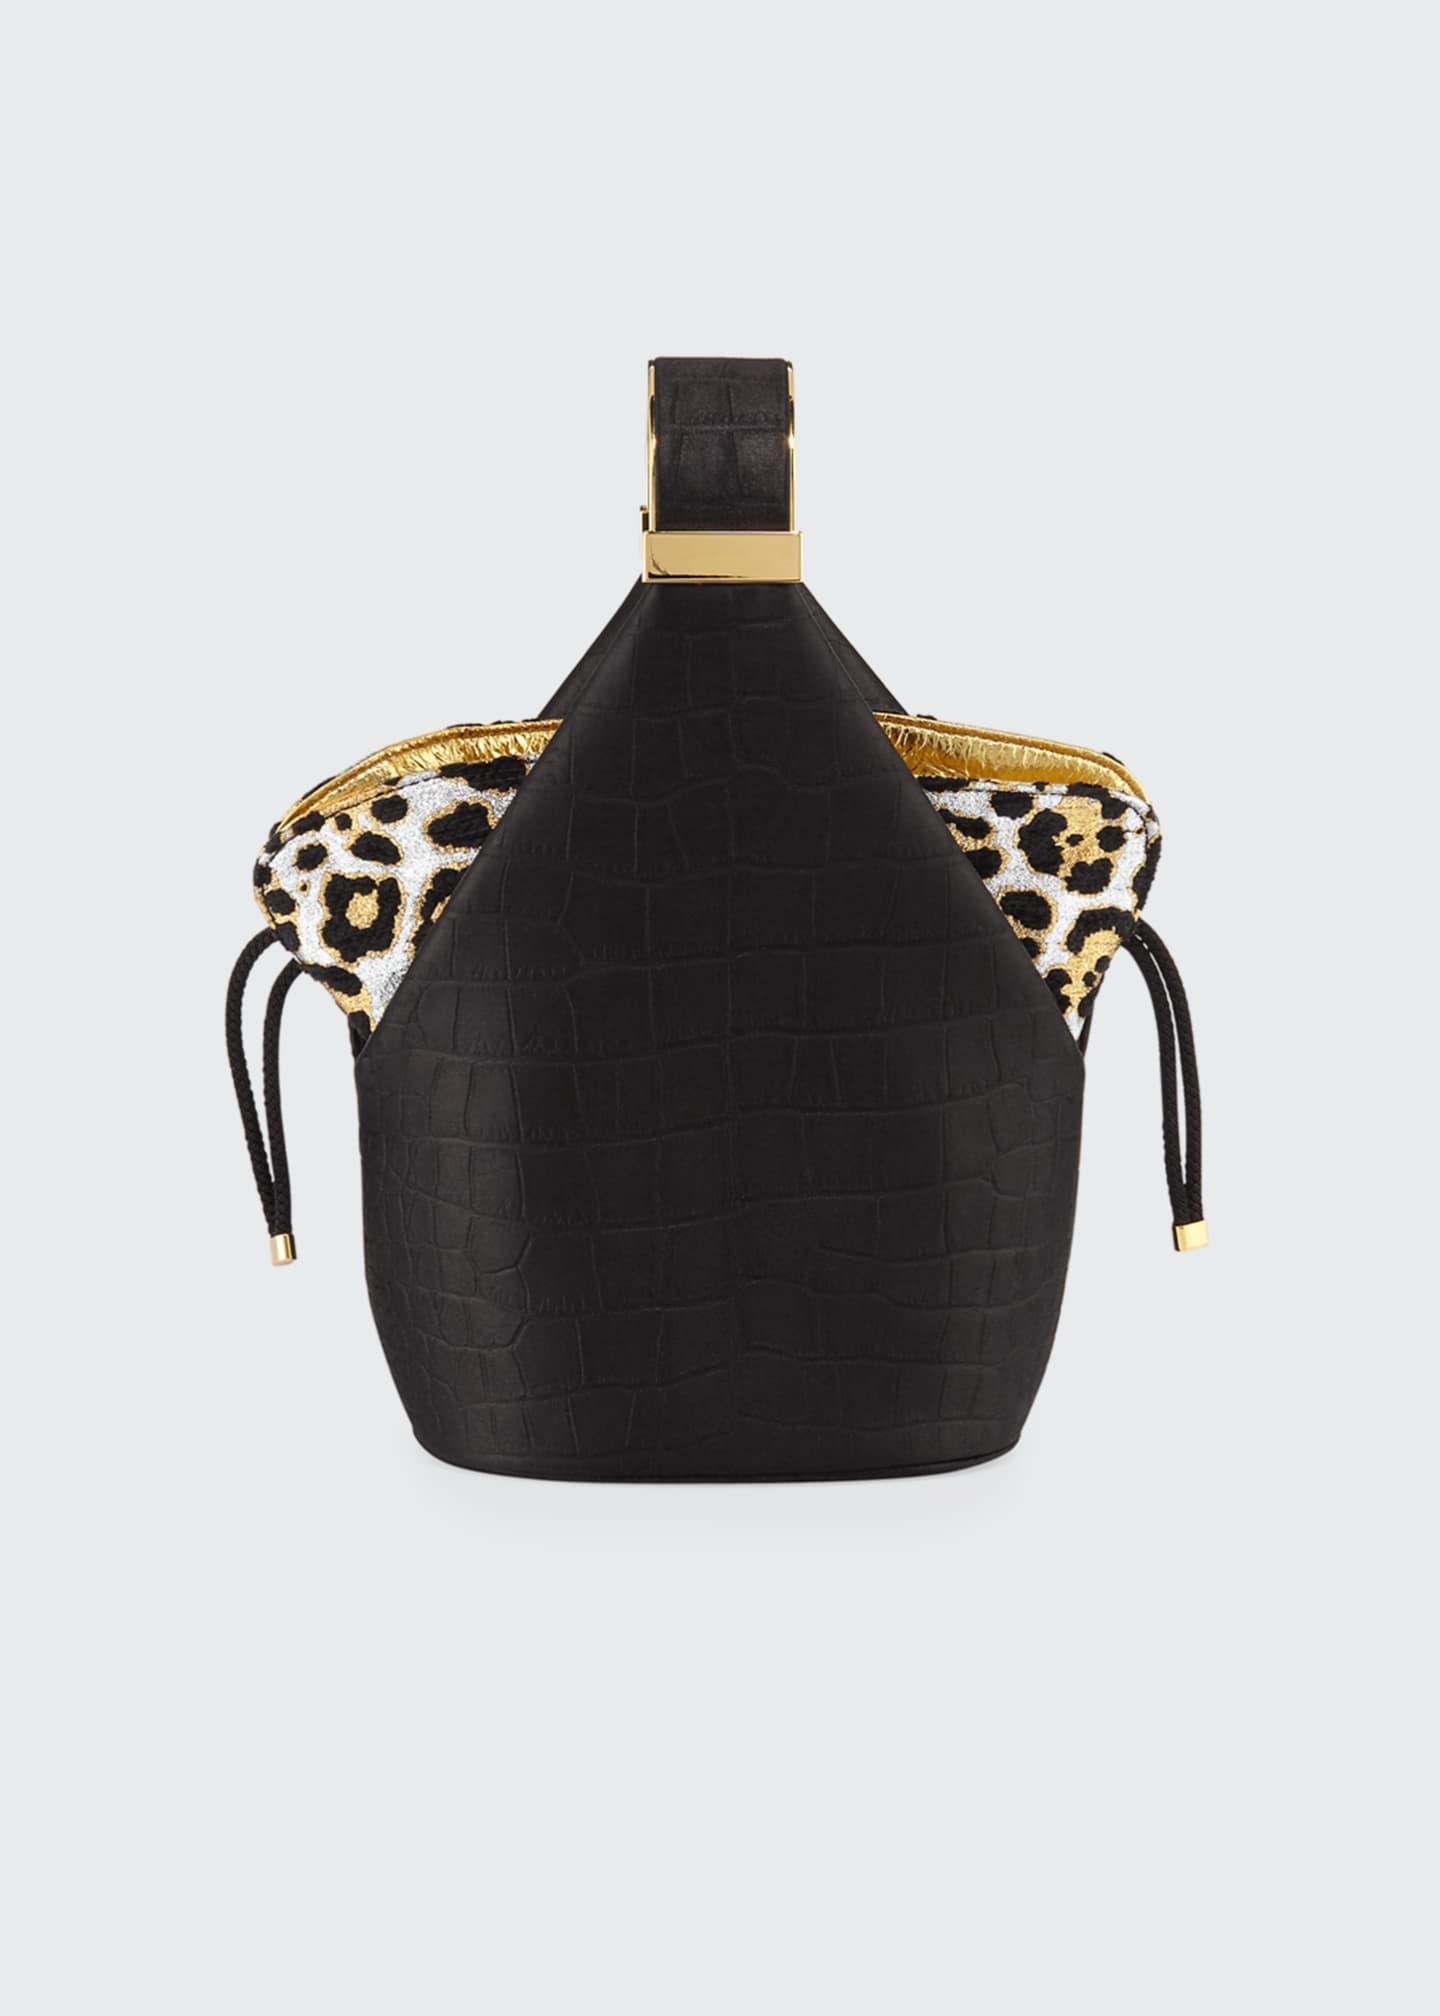 Bienen Davis Kit Croc-Embossed and Leopard Bucket Bag